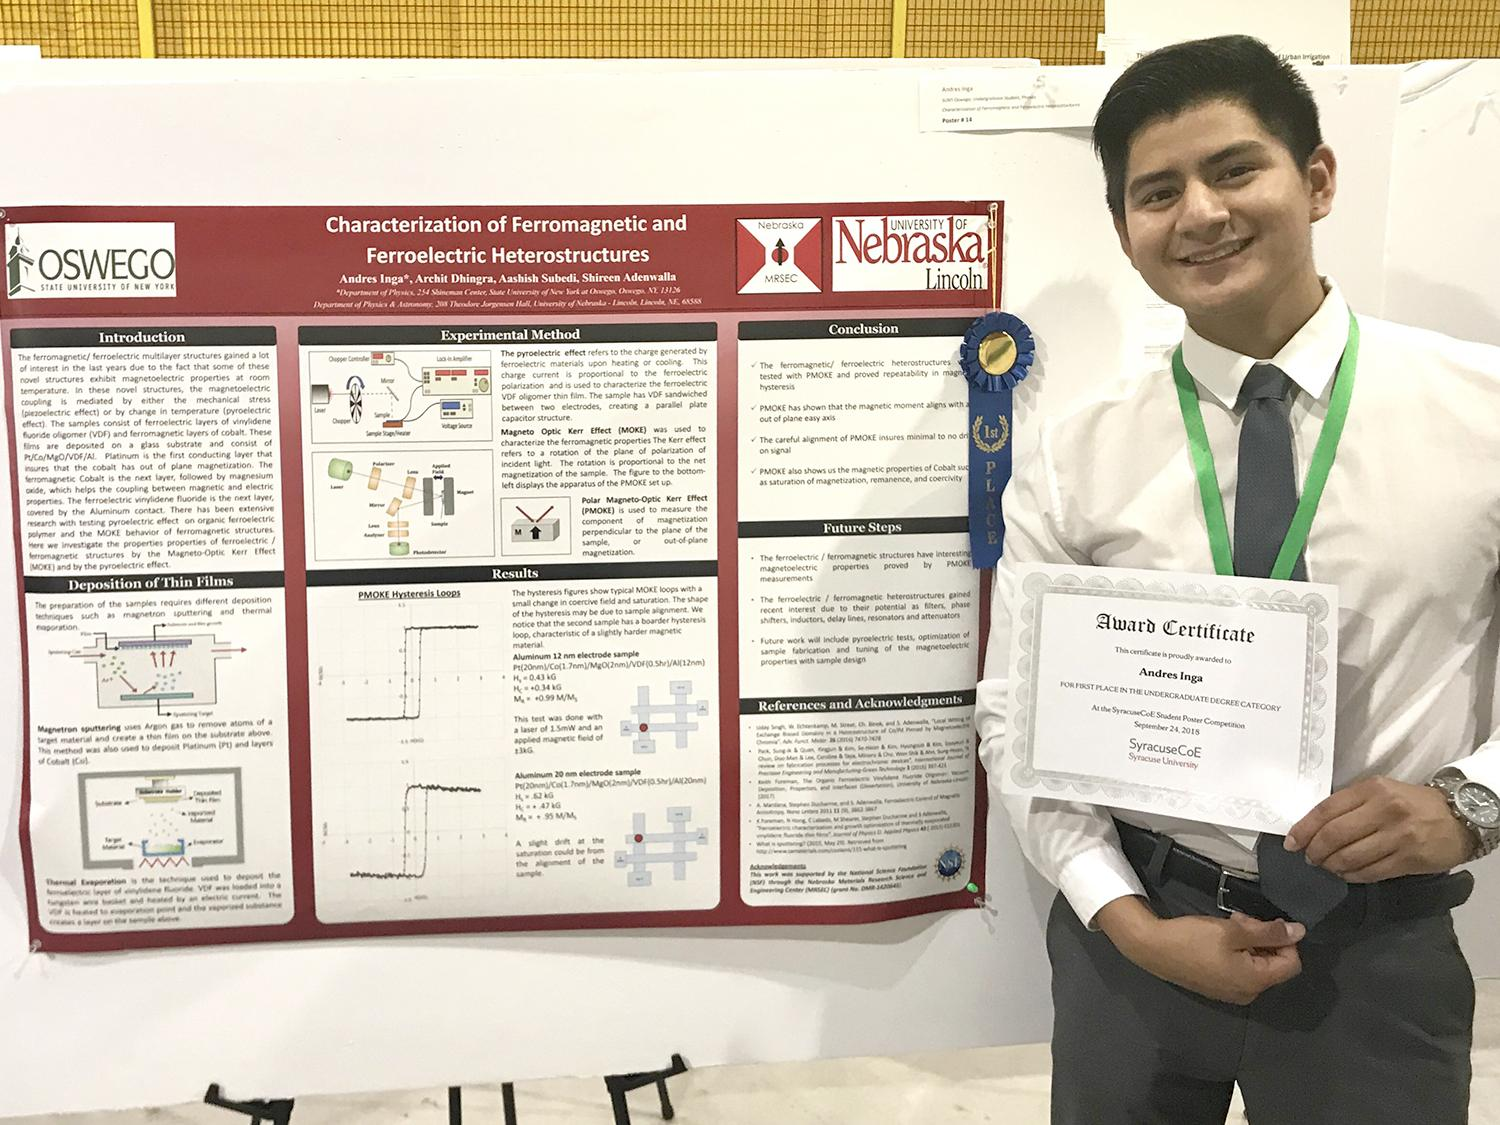 Andres Inga earned first place at the Syracuse Center of Excellence for his poster presentation